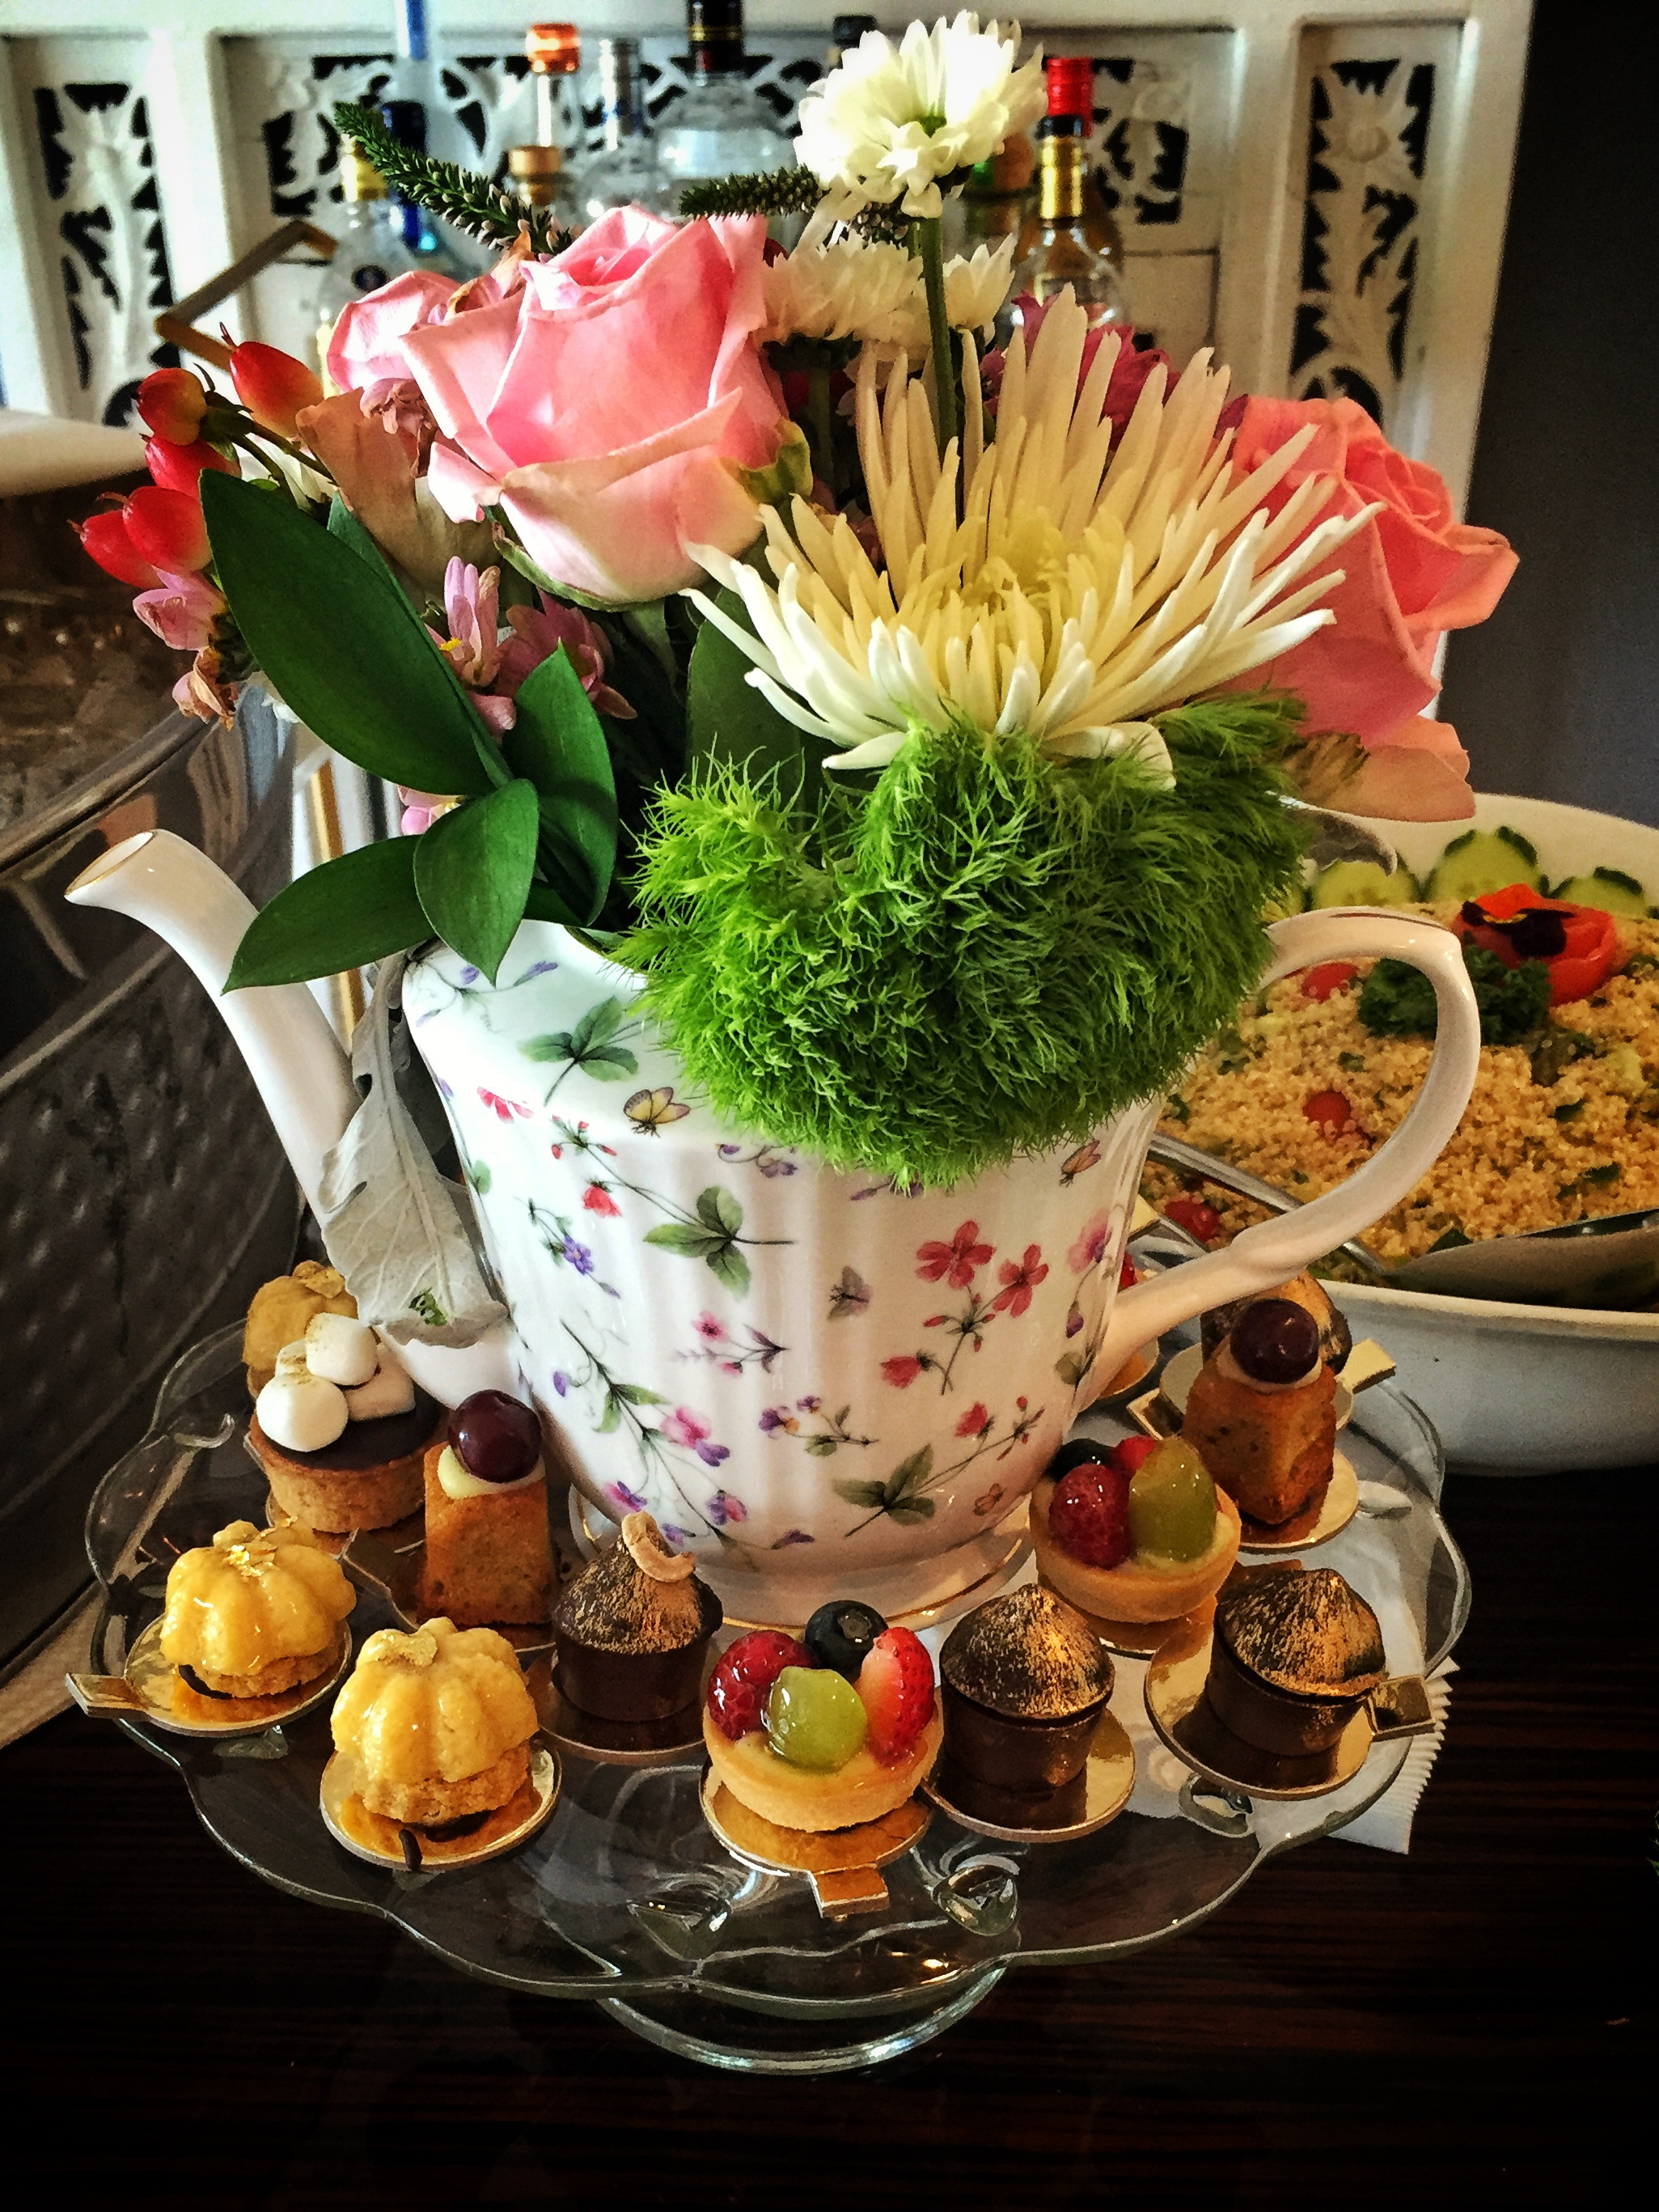 A decadent birthday spread for an afternoon tea with 20 guests